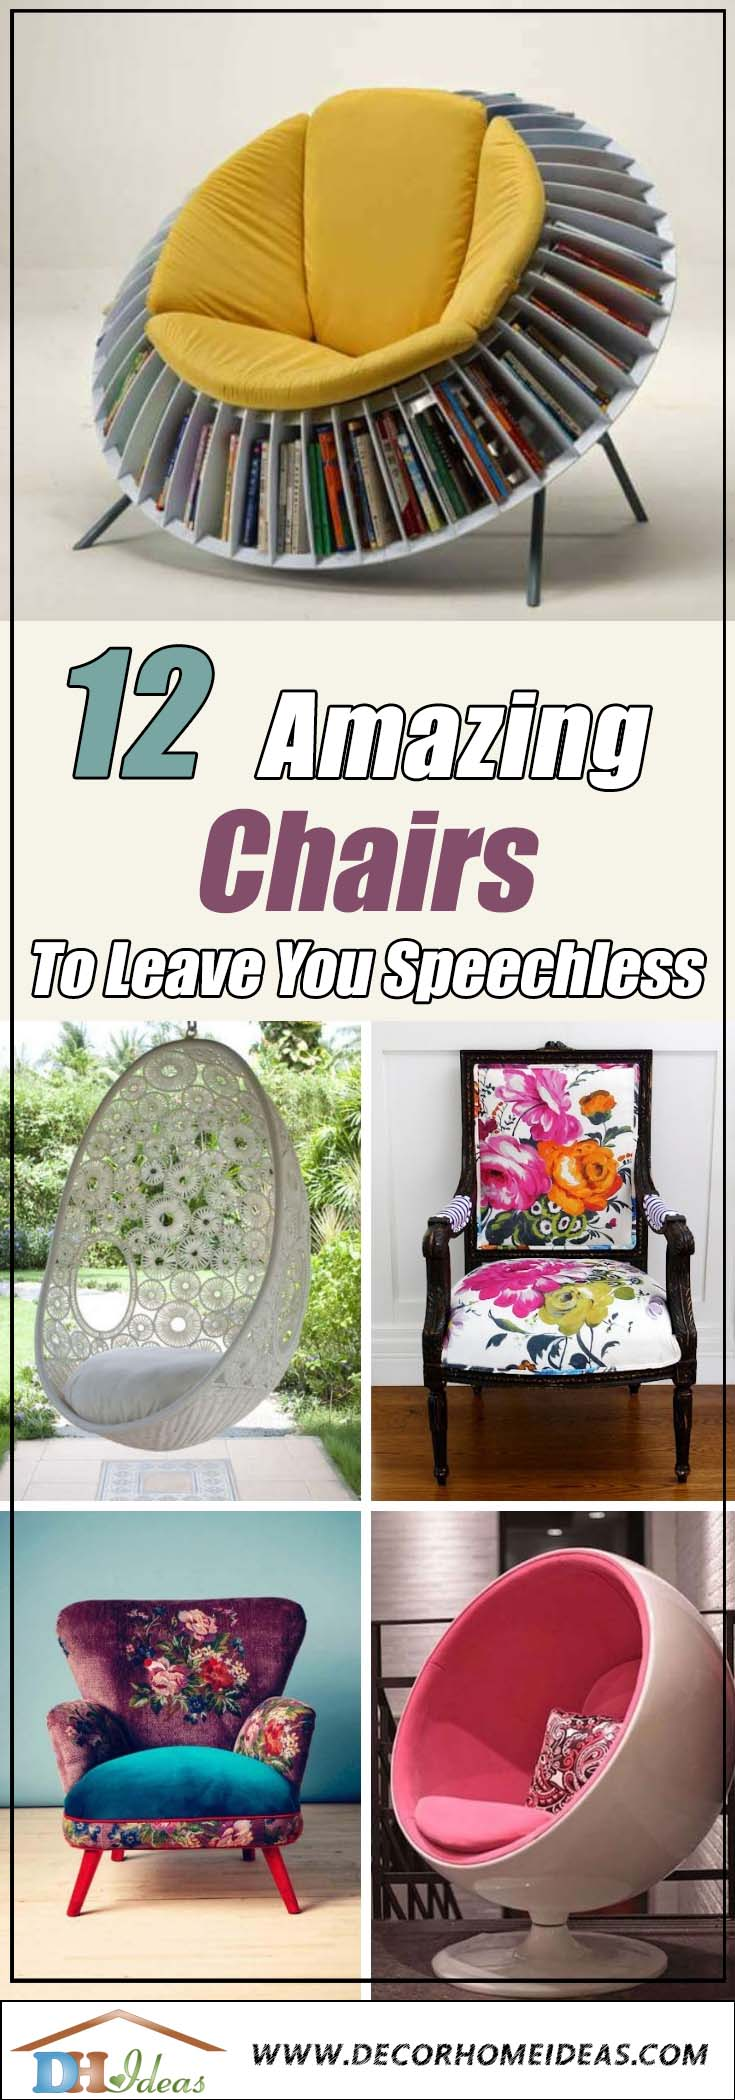 12 Amazing Chairs To Leave You Speechless | Great chair and seating decorations, trendy and cozy. #chair #furniture #homedecor #decoratingideas #diy #decorhomeideas